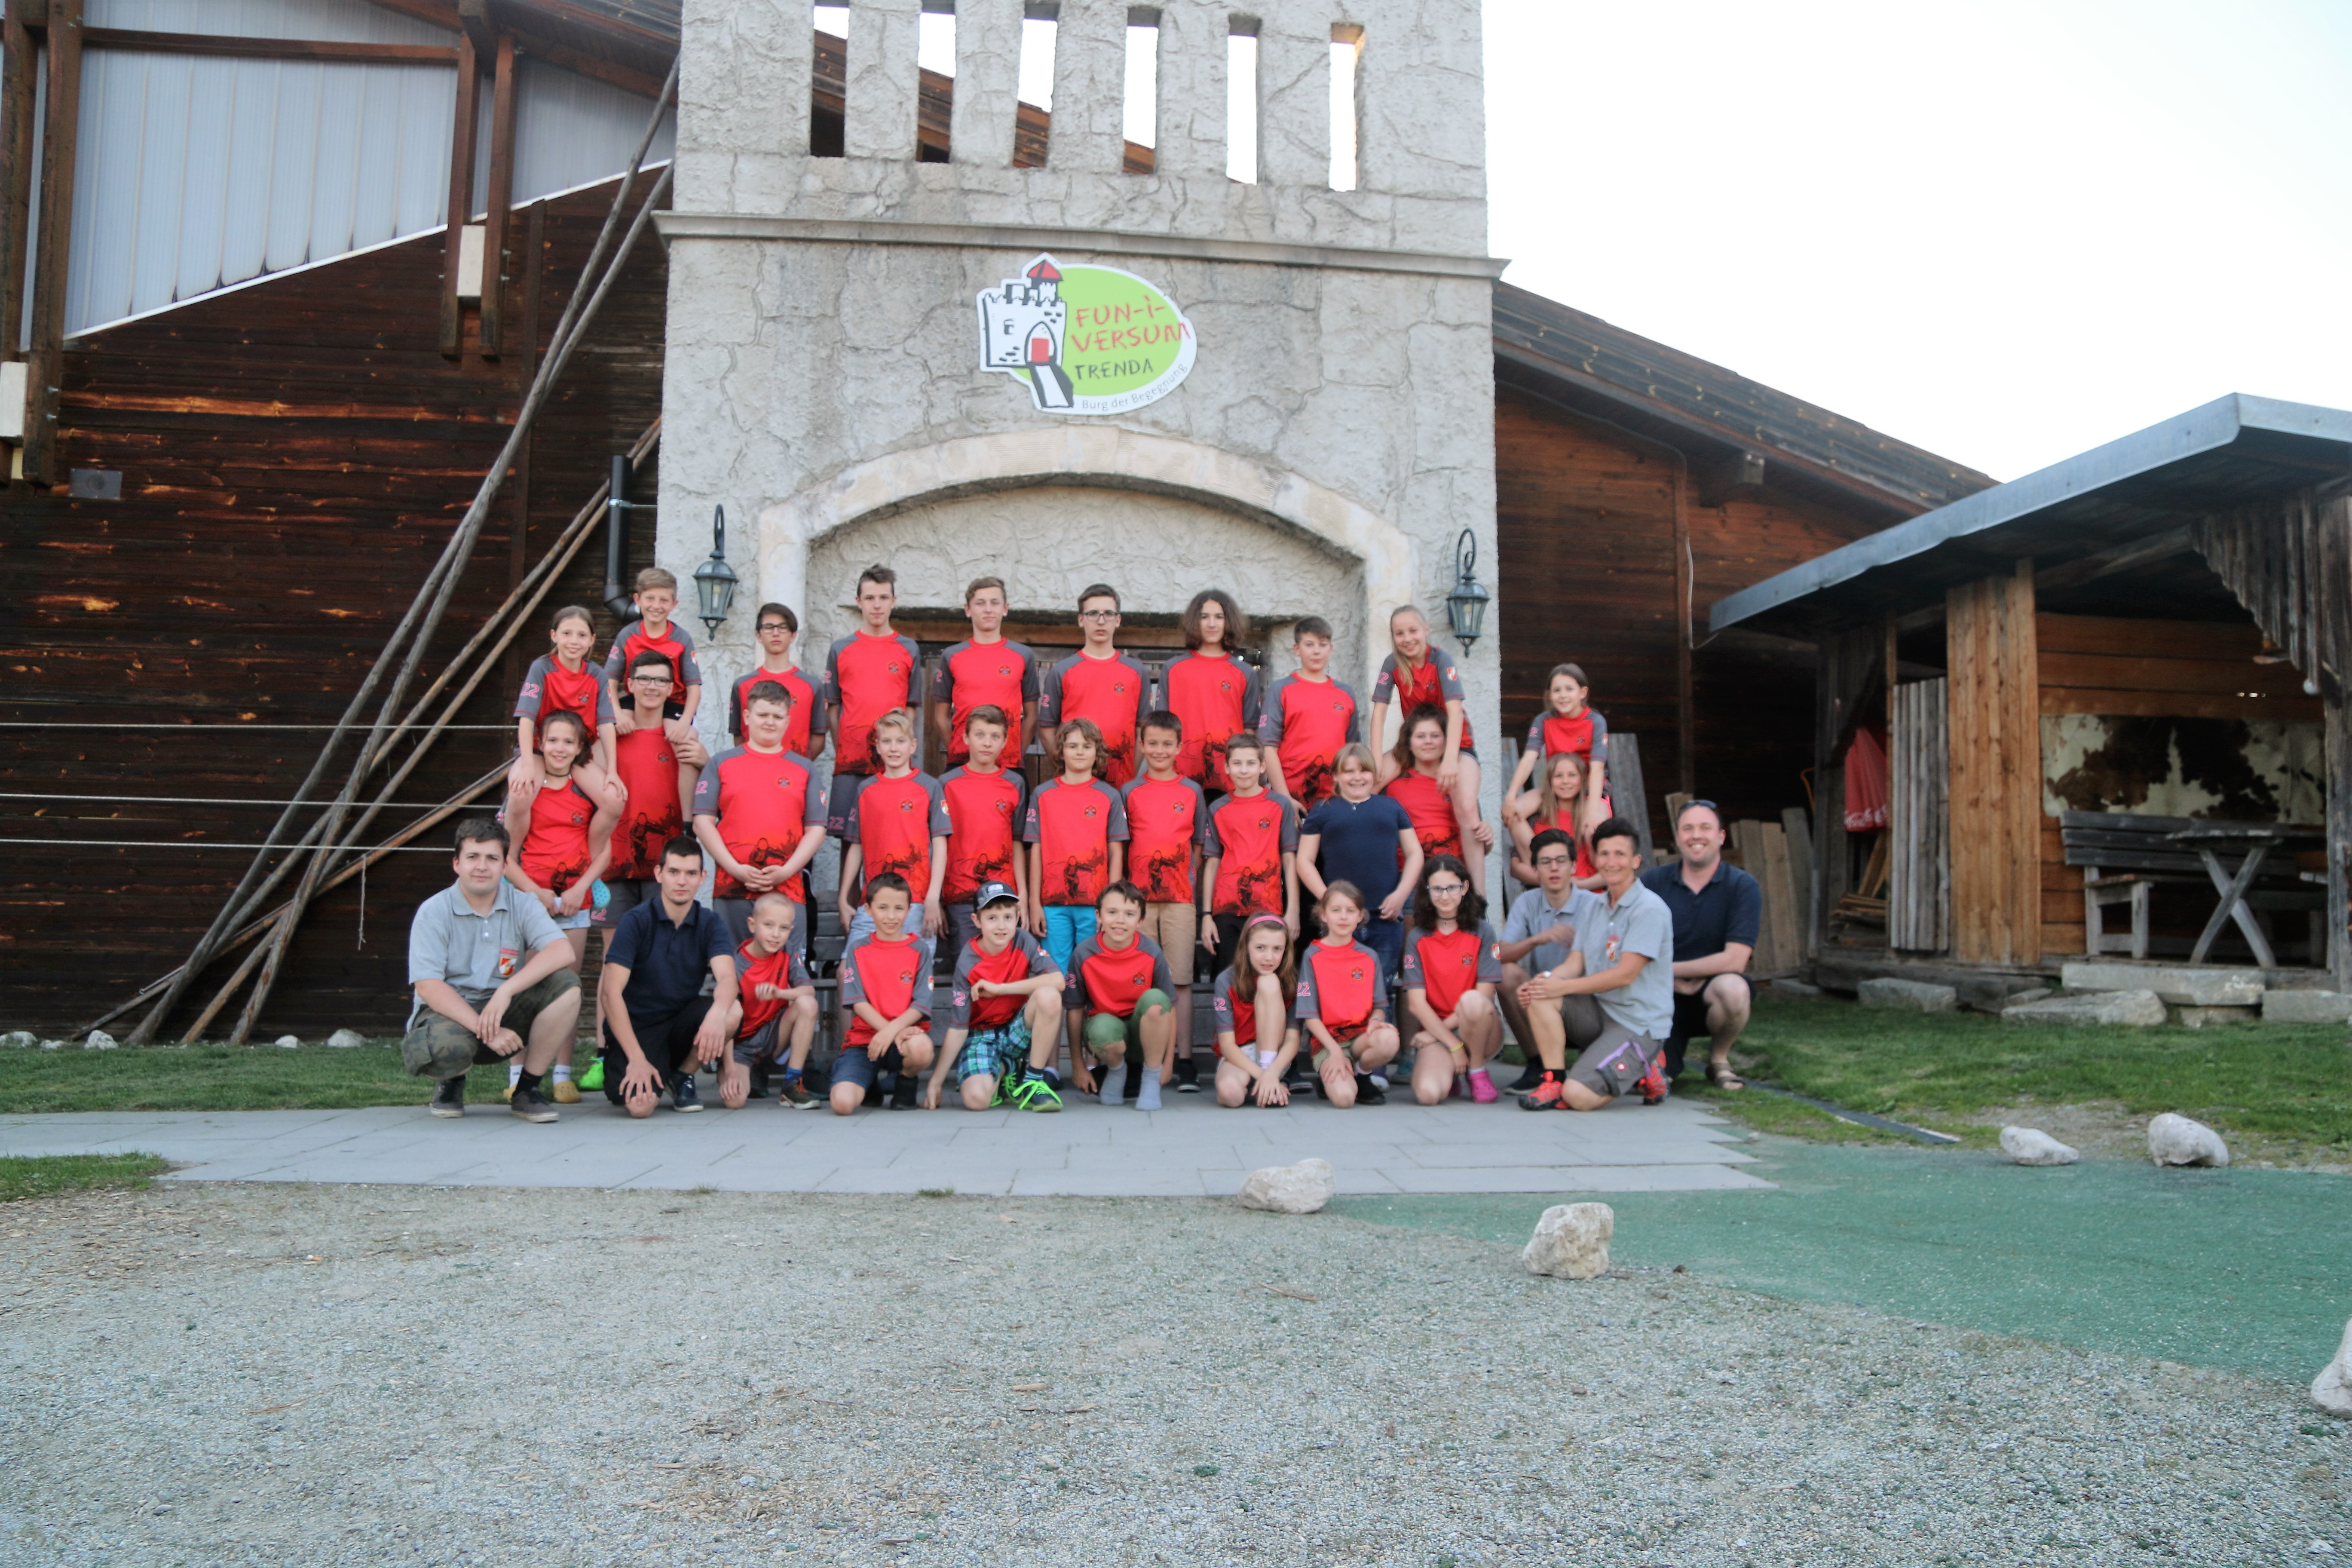 20.-22.04.2018 - FJ: Trainingslager in St. Oswald/Freistadt